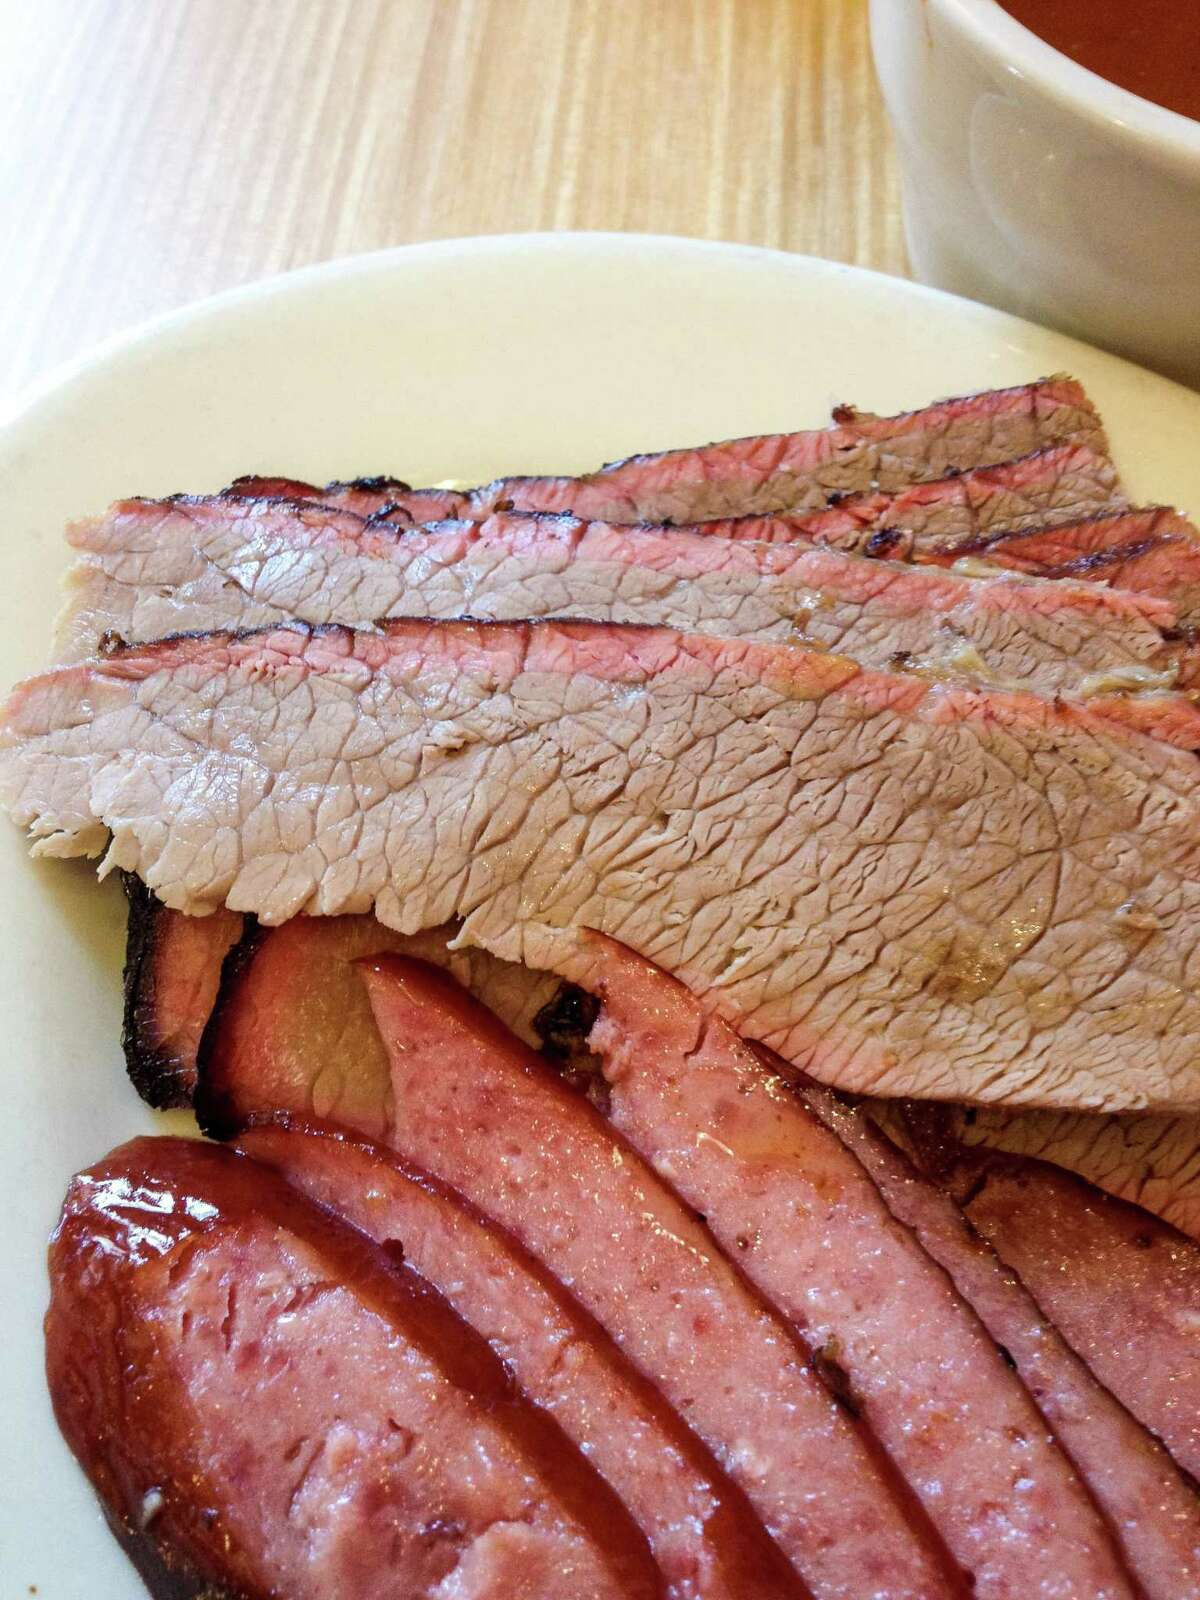 Lean brisket with fat cap removed